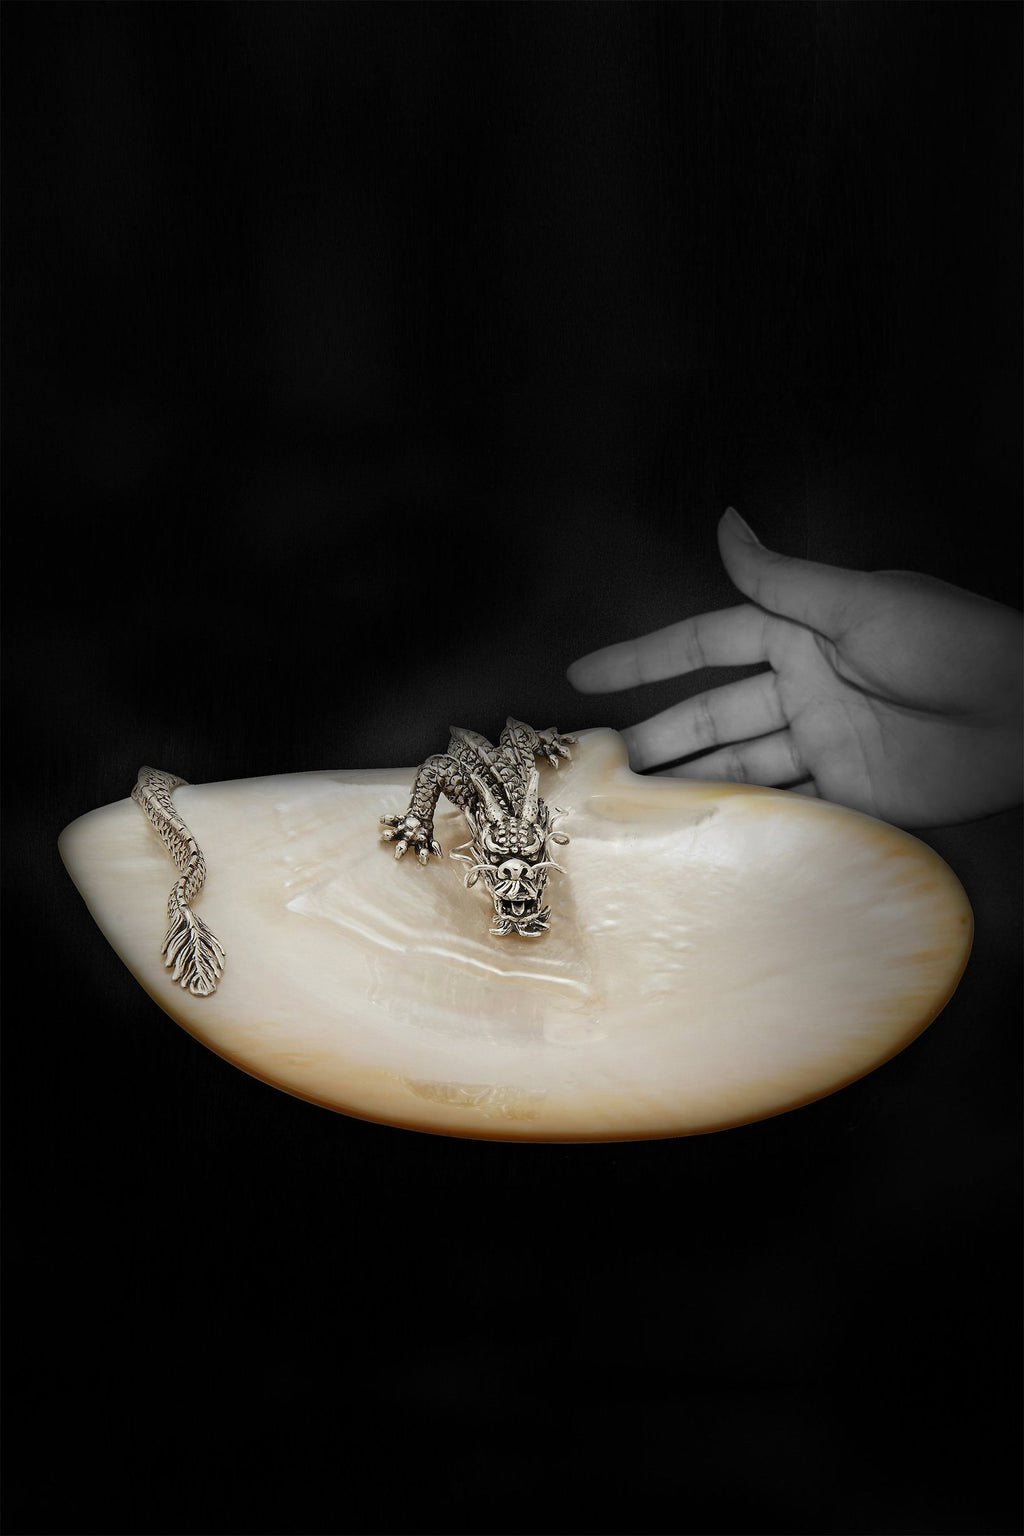 LOTUS | Mother of Pearl Plate with Swirling Dragon Marie France Van Damme